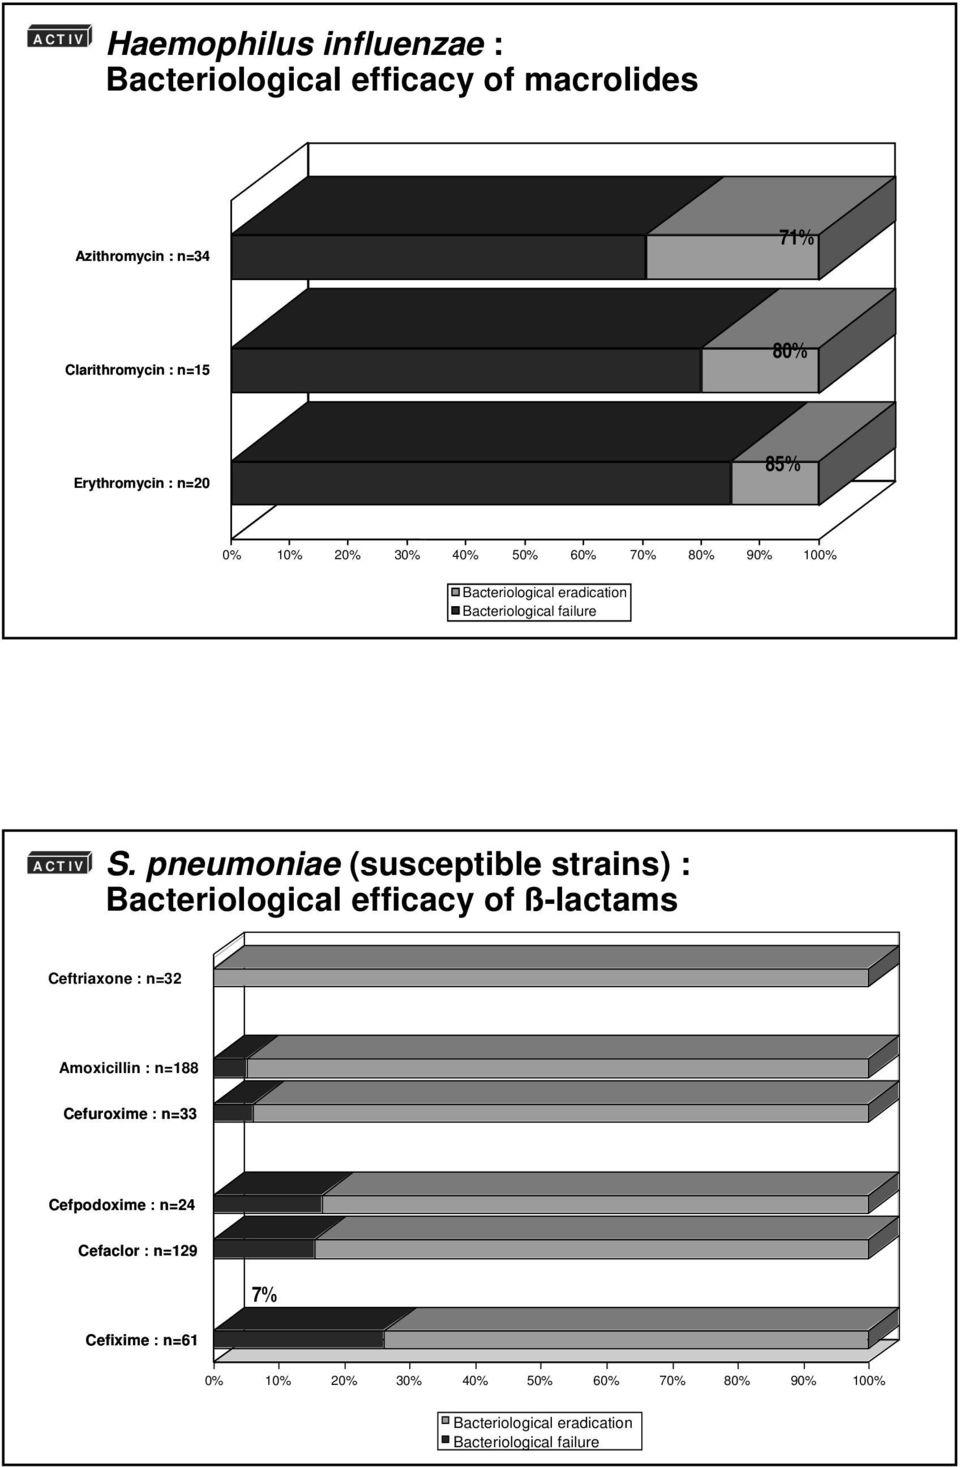 pneumoniae (susceptible strains) : Bacteriological efficacy of ß-lactams Ceftriaxone : n=32 Amoxicillin : n=188 Cefuroxime : n=33 5%